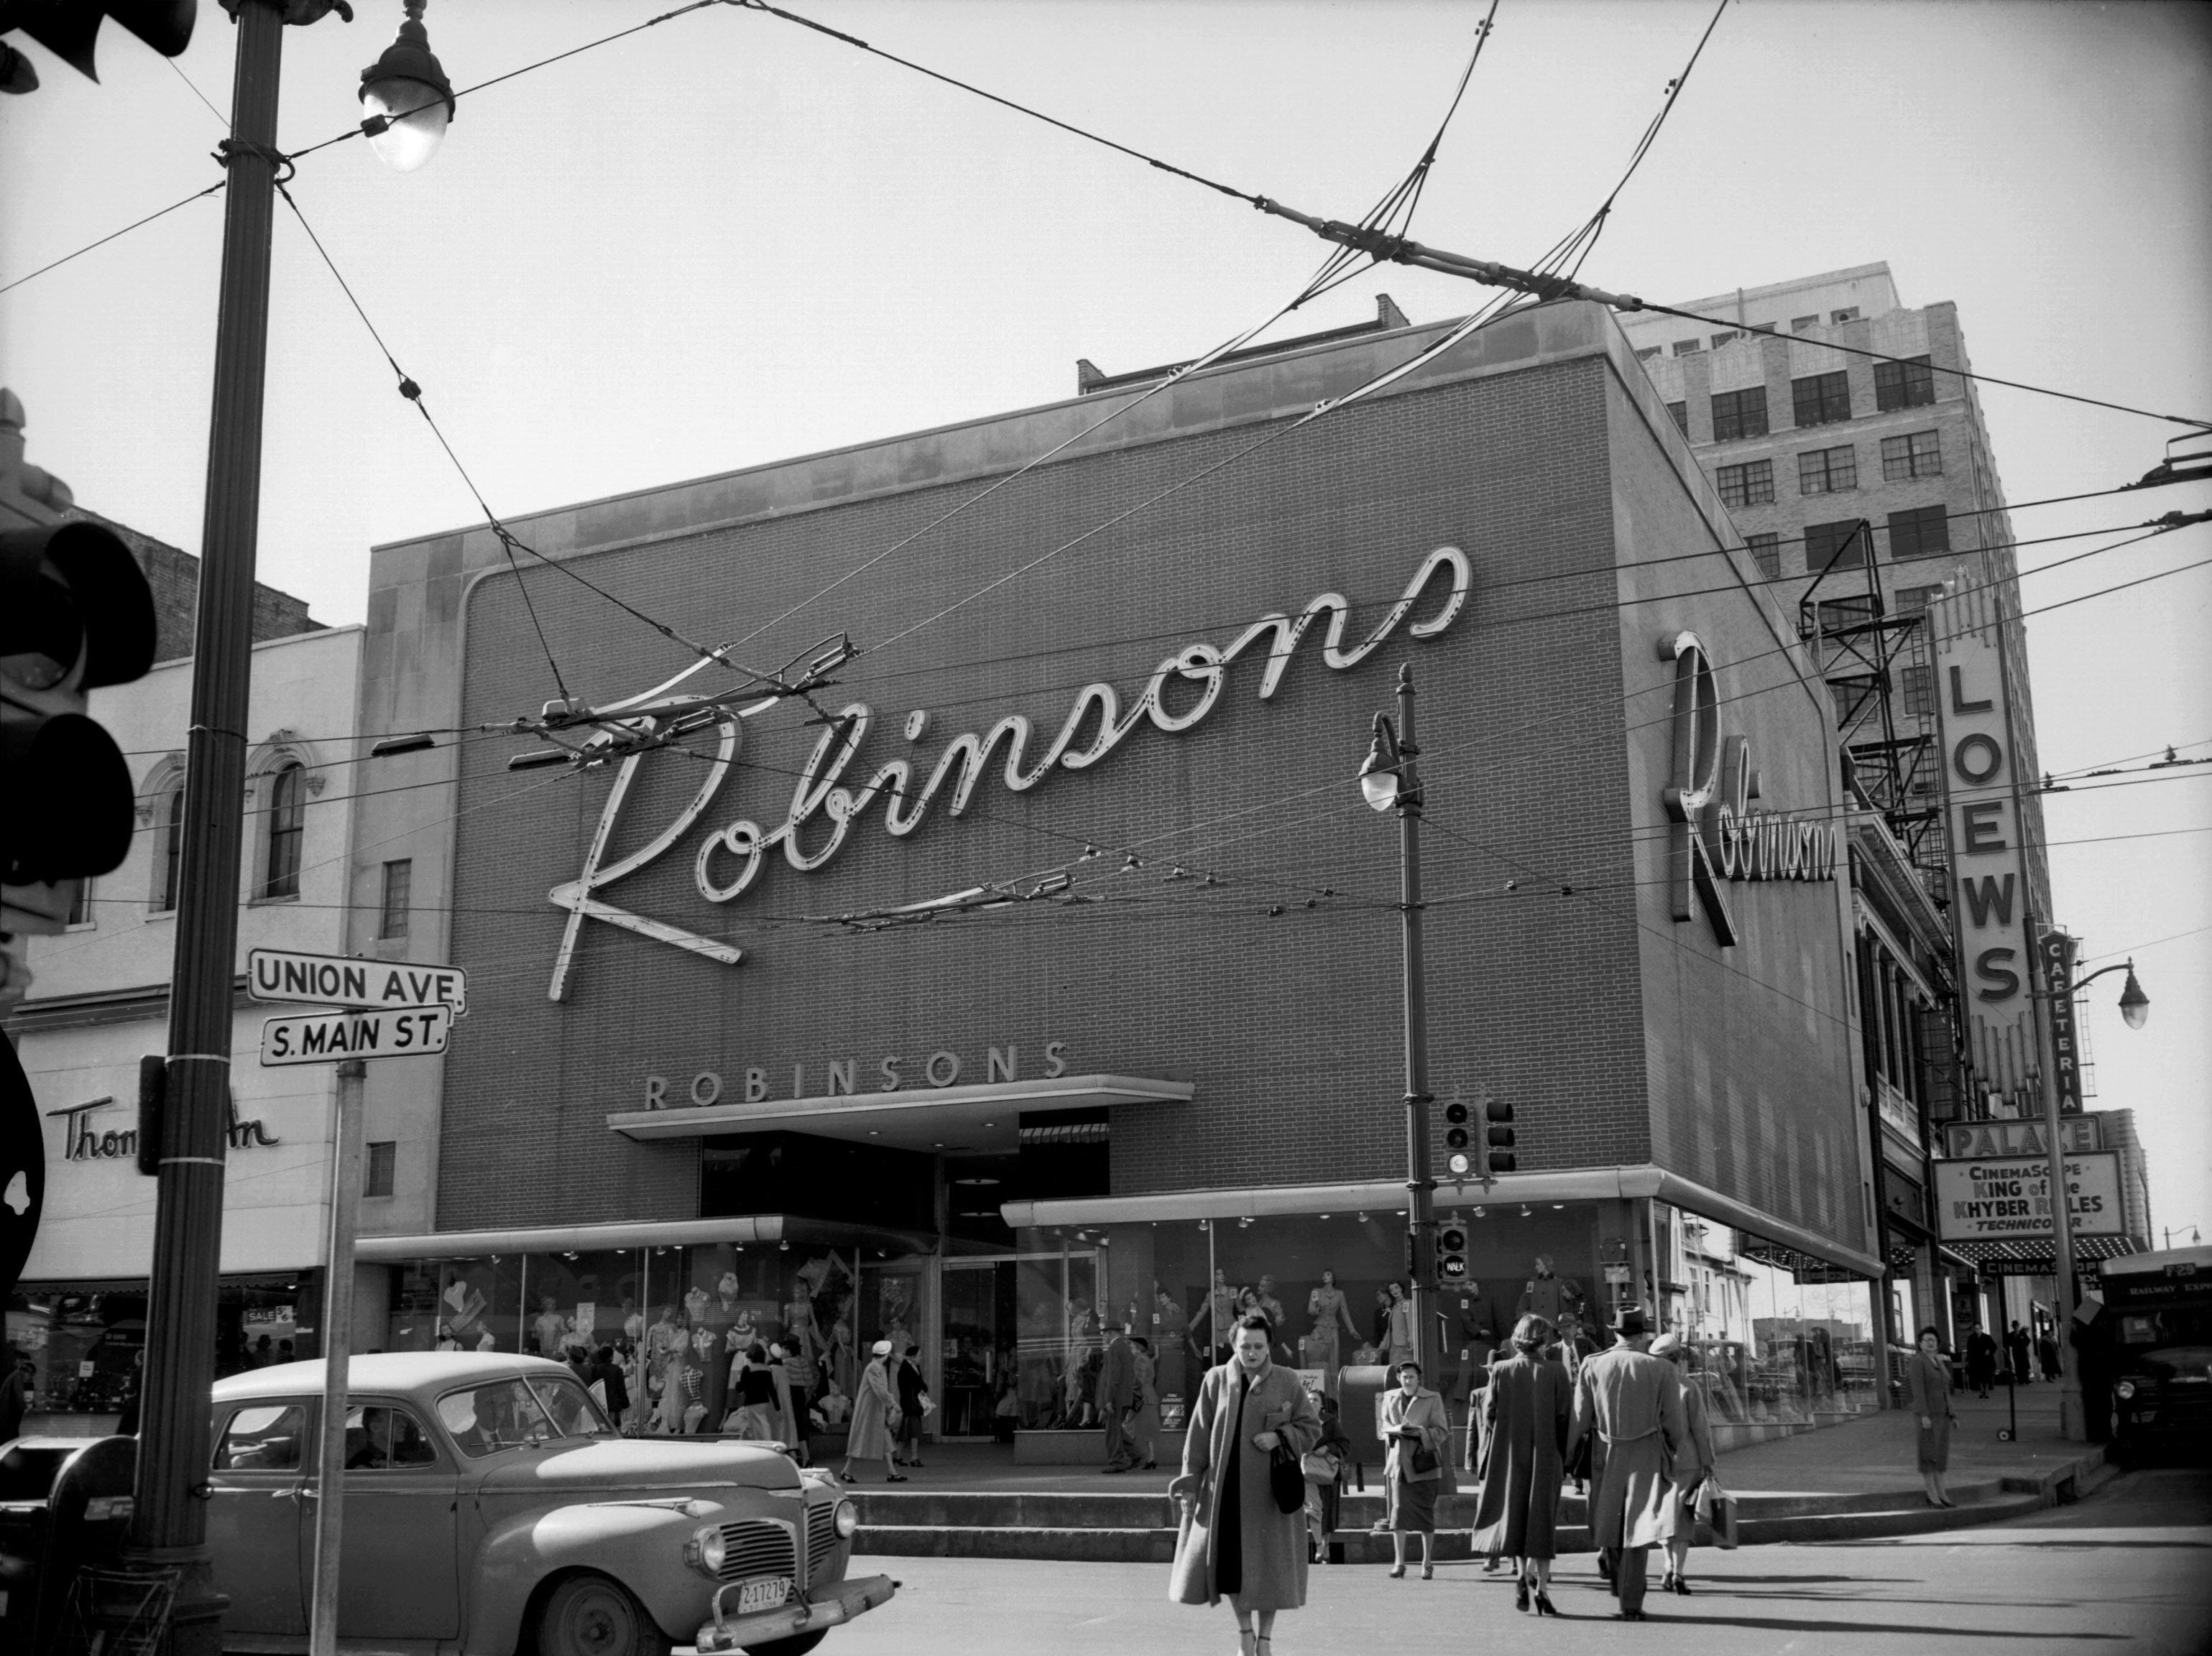 Robinson's, a new Memphis business as seen in February, 1954. The business was housed in an approximately $500,000 building at the southwest corner of Main and Union, part of downtown improvement.